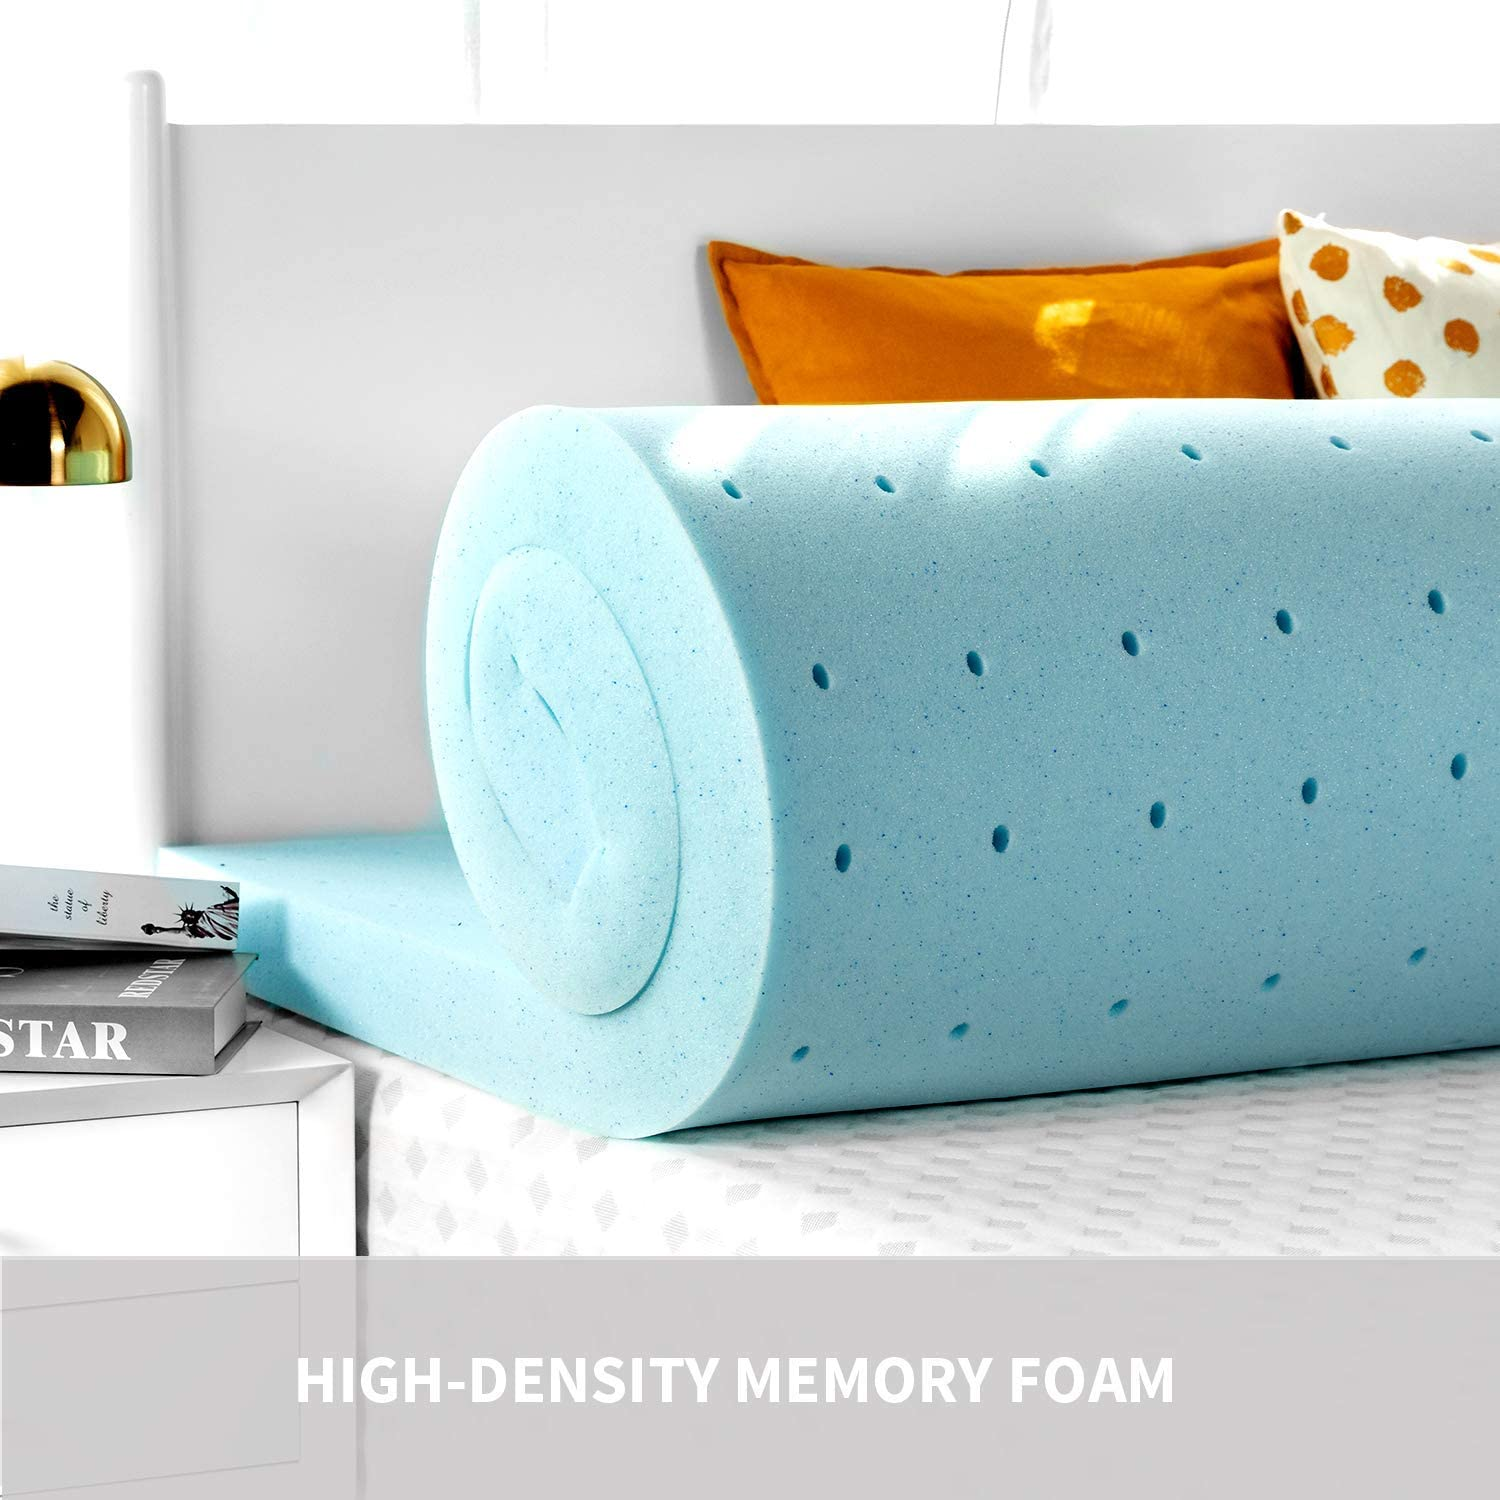 RUUF Memory Foam Mattress Topper, High Density Mattress Pad 3 inch, Twin